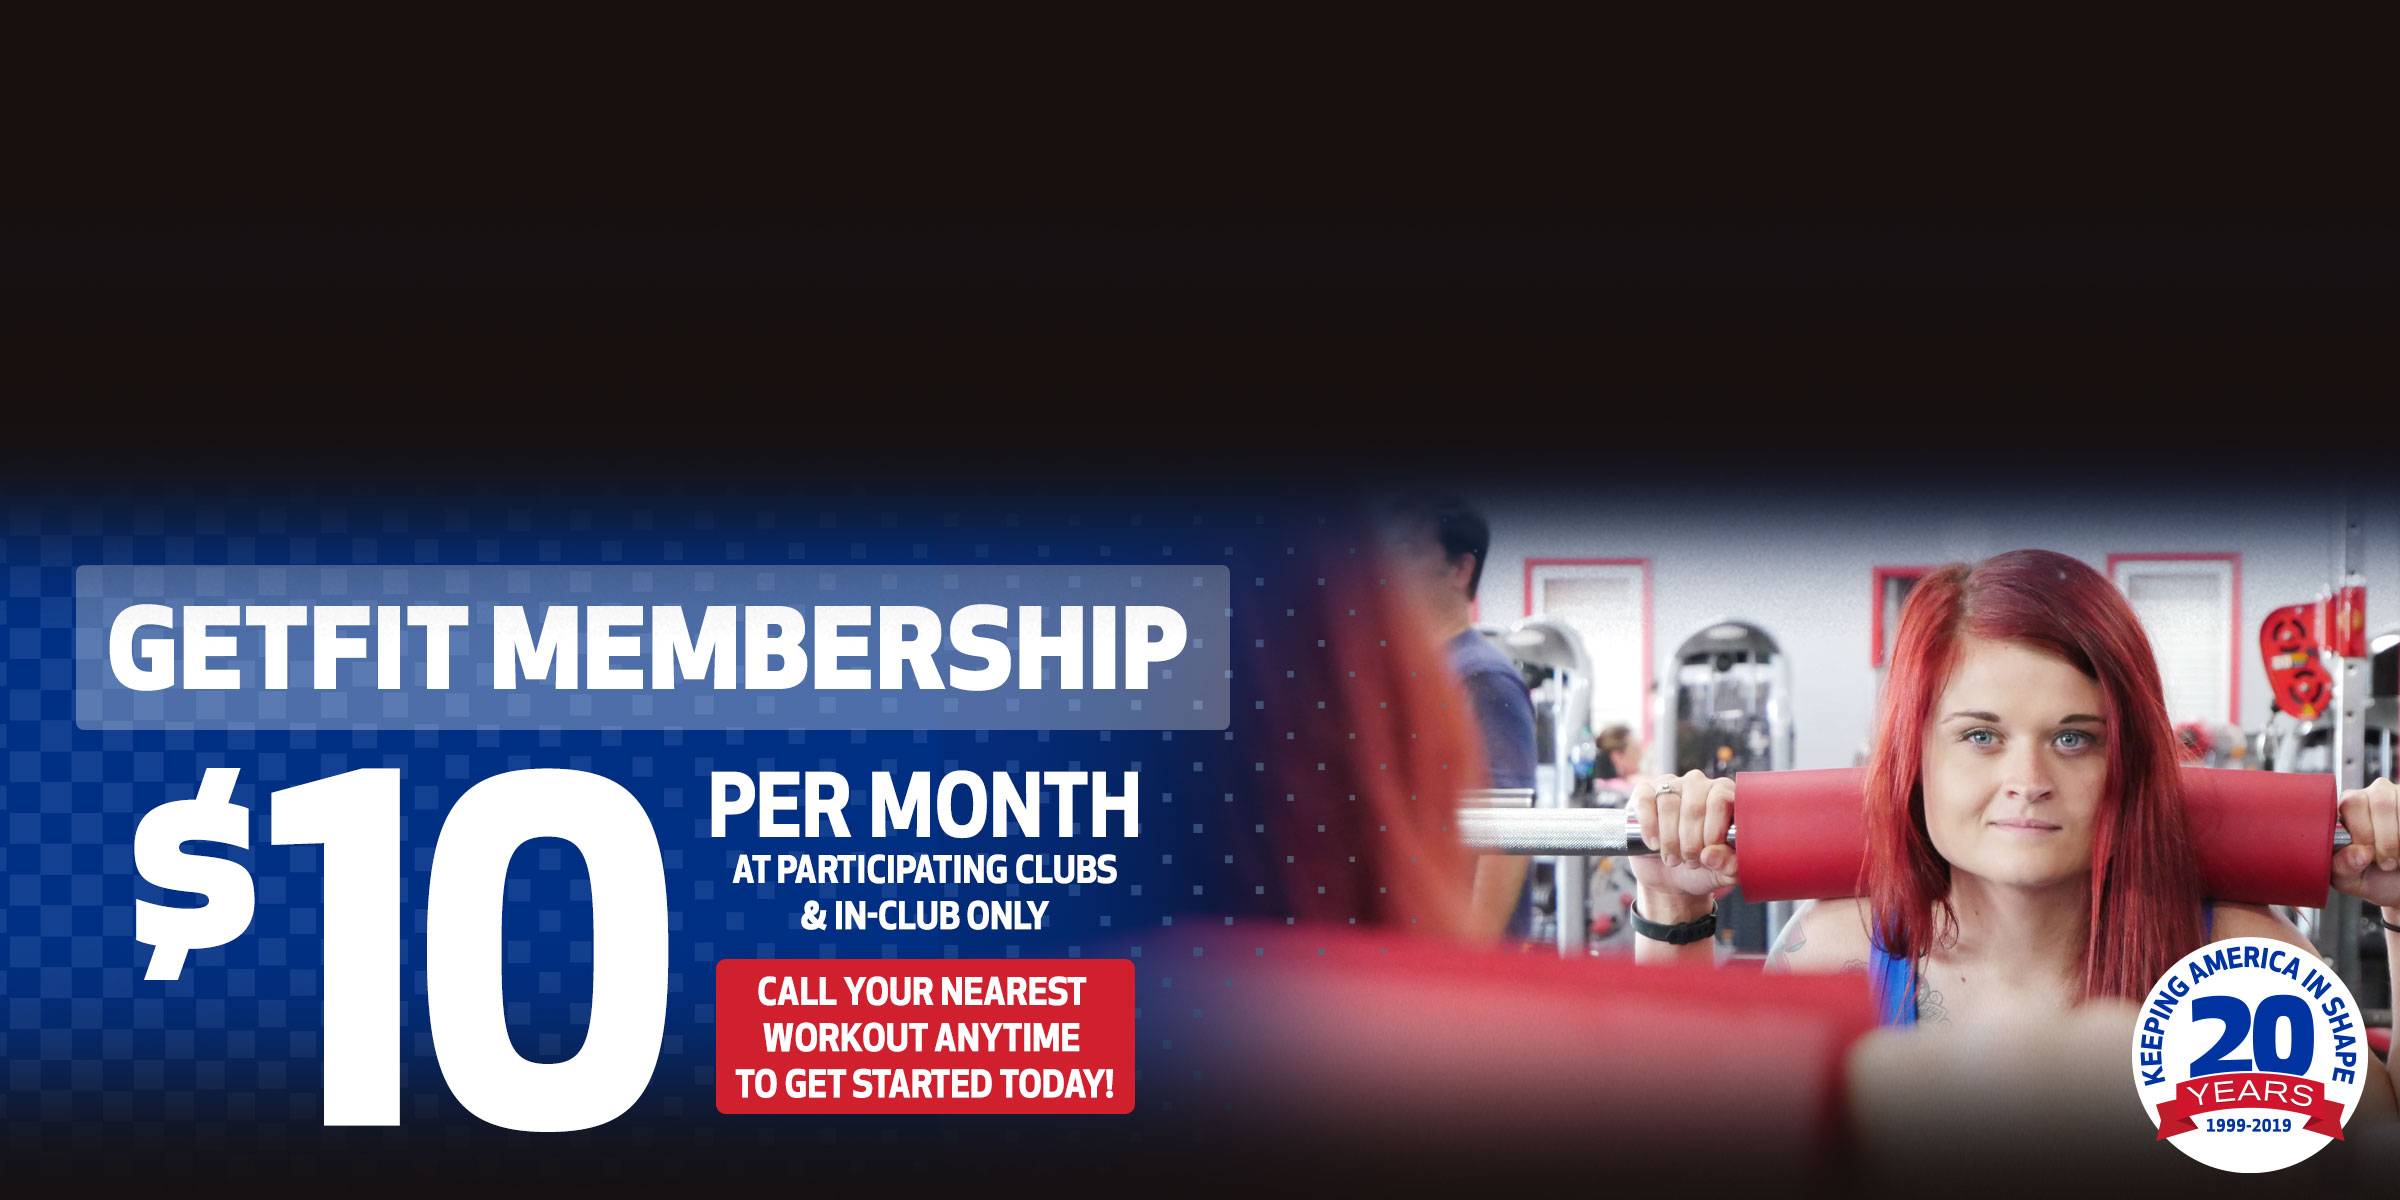 Workout Anytime GetFit Membership: $10 a Month